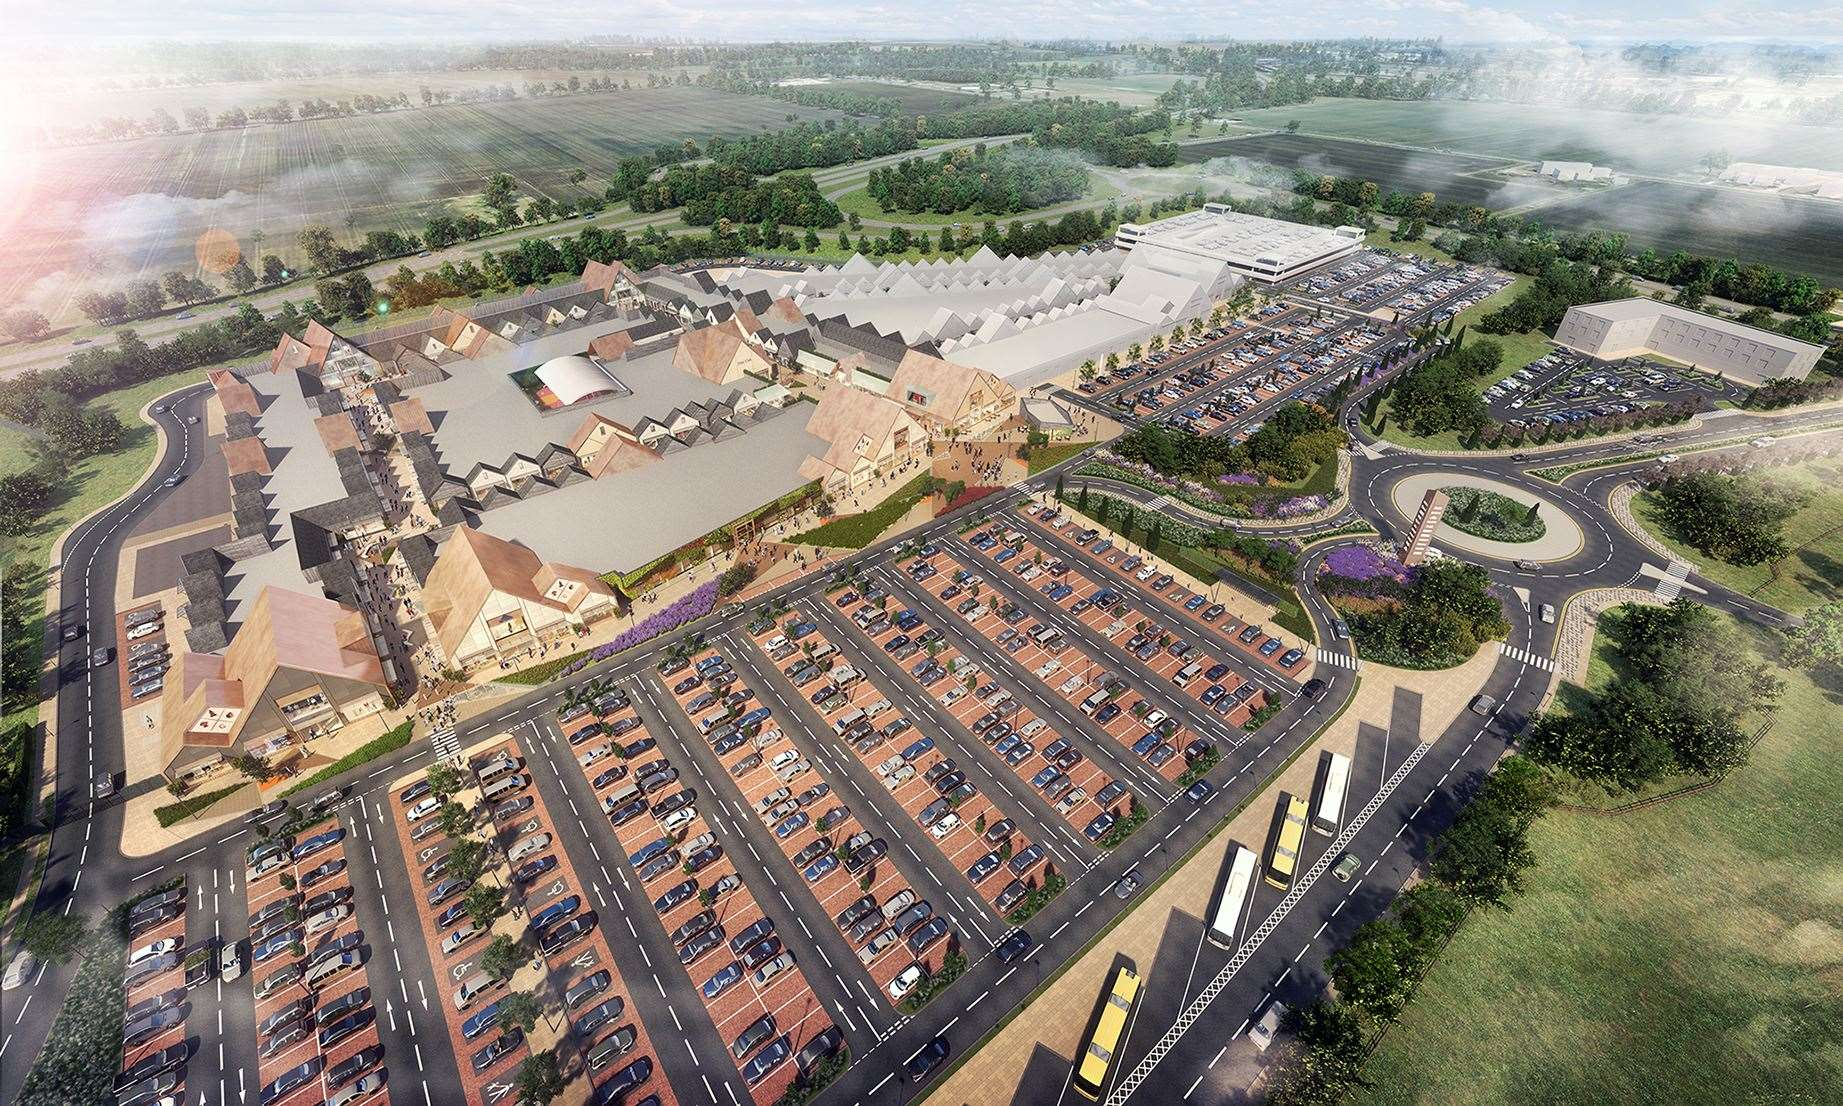 A visual of the £100 million Rioja designer outlet village to be built in Grantham. (20622689)